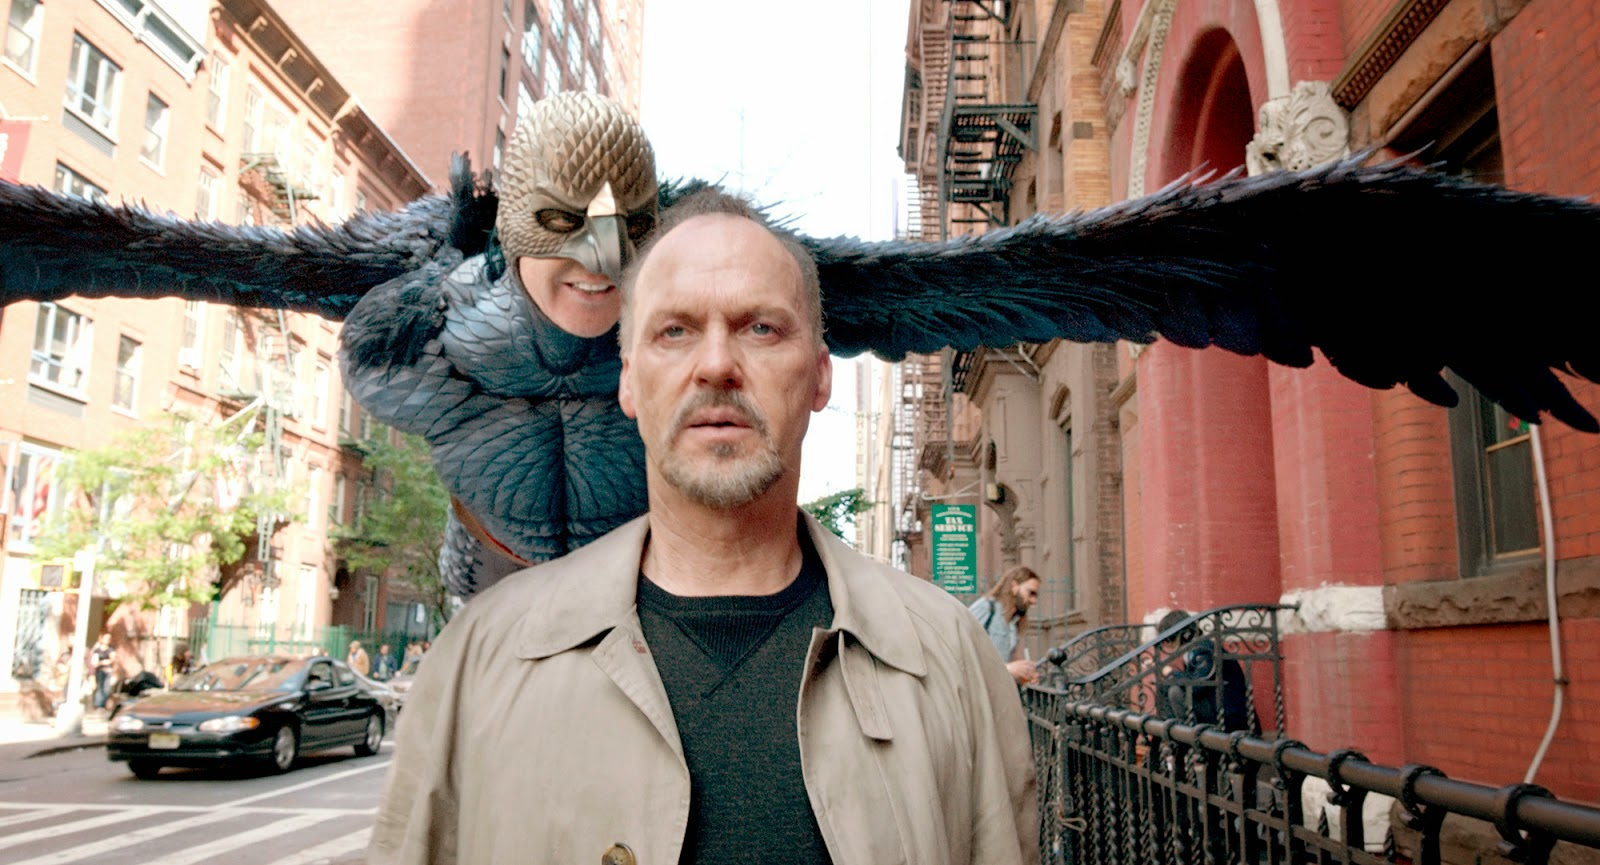 Michael Keaton as Riggan Thomas in Birdman (2014), Birdman's voice talking to Riggan, Directed by Alejandro González Iñárritu, Oscar-winning film